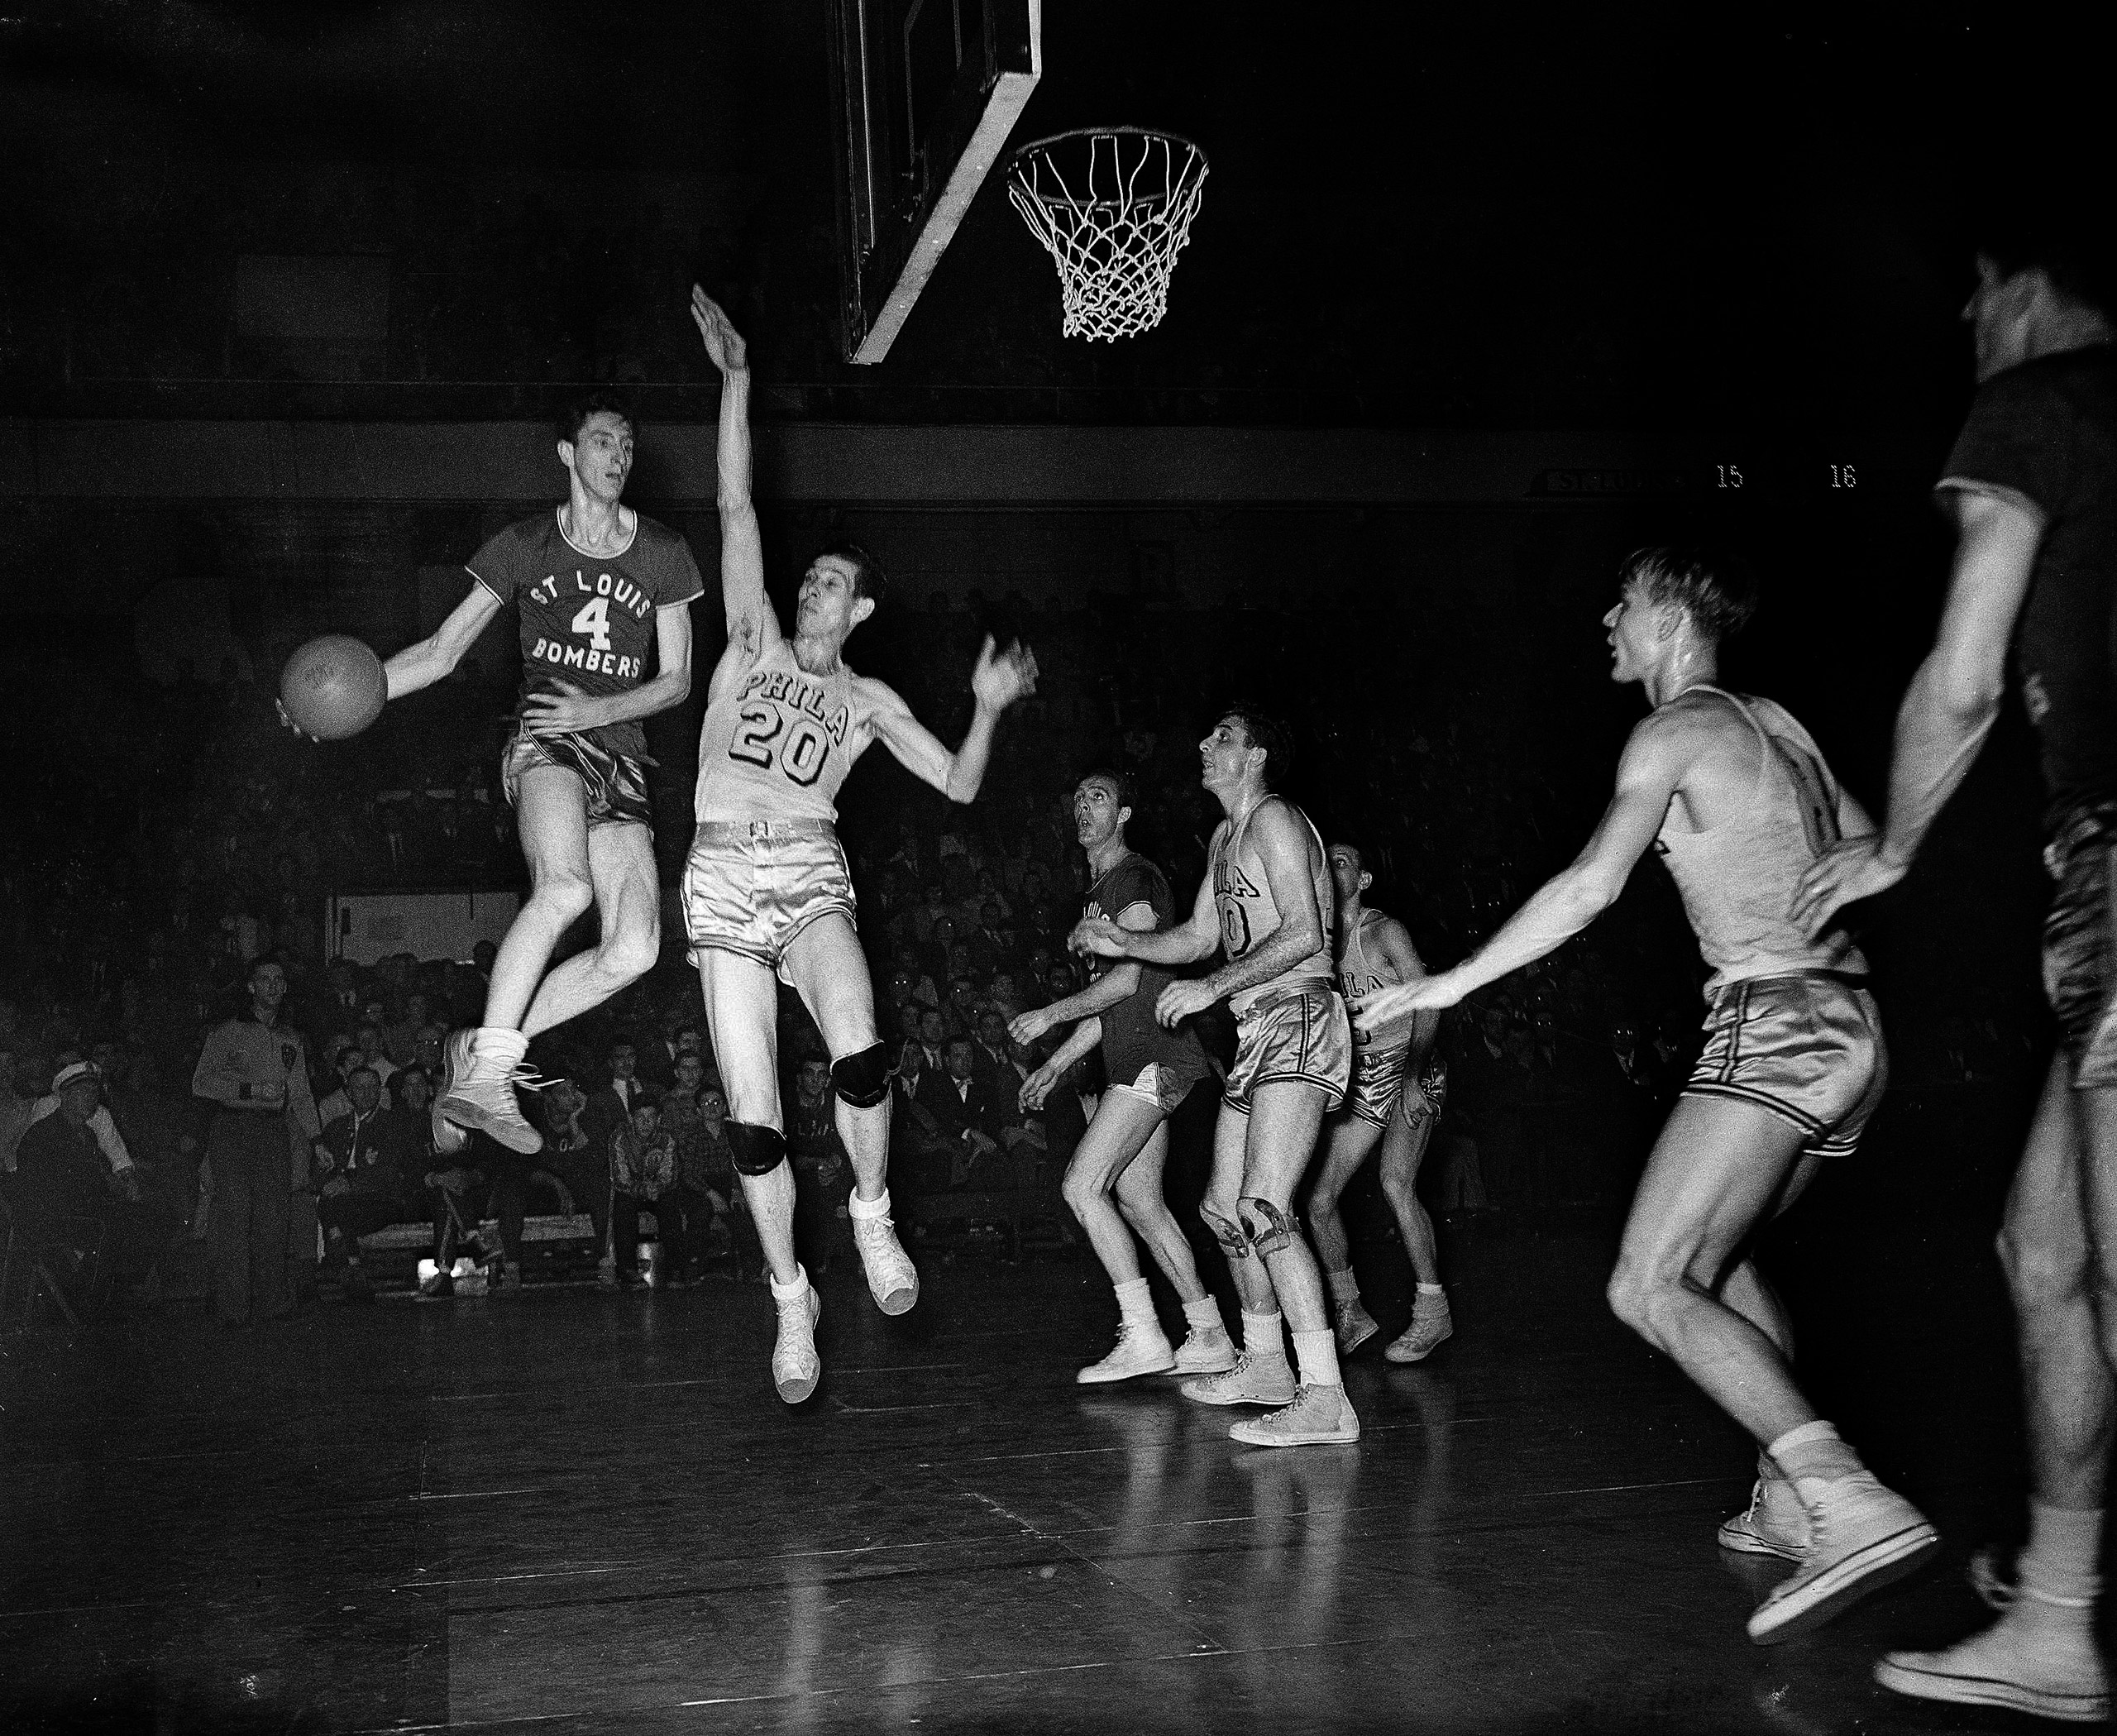 Red Rocha (4), St. Louis Bombers center, goes up in the air to make a pass in Basketball Association of America playoff game with the Philadelphia Warriors at the Arena, March 30, 1948. Chuck Halbert, lanky Warriors center, also leaves the floor in an attempt to block the pass.